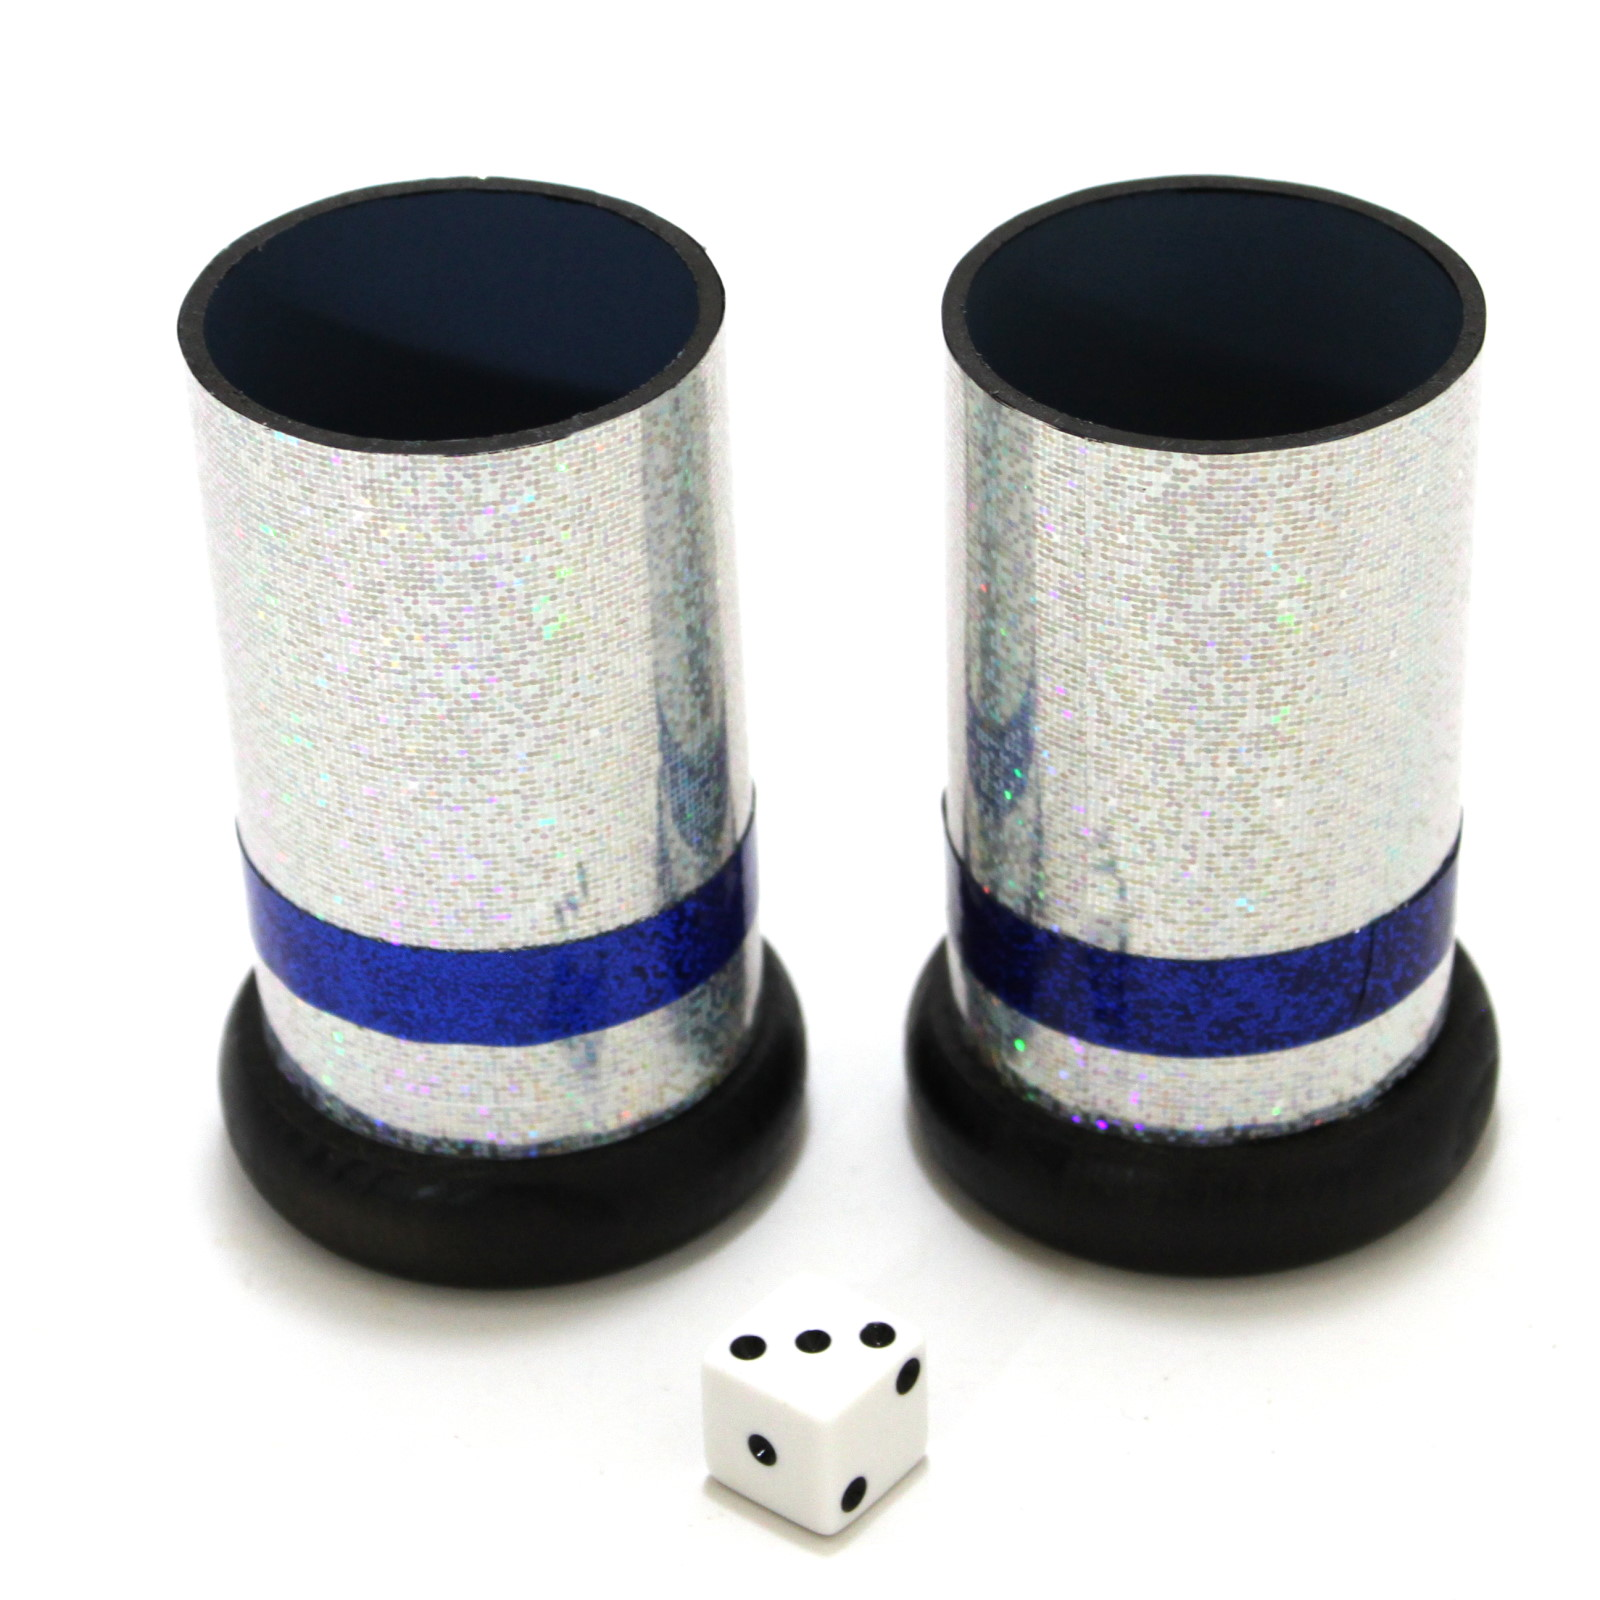 Double Dice Prediction by Lubor Fiedler